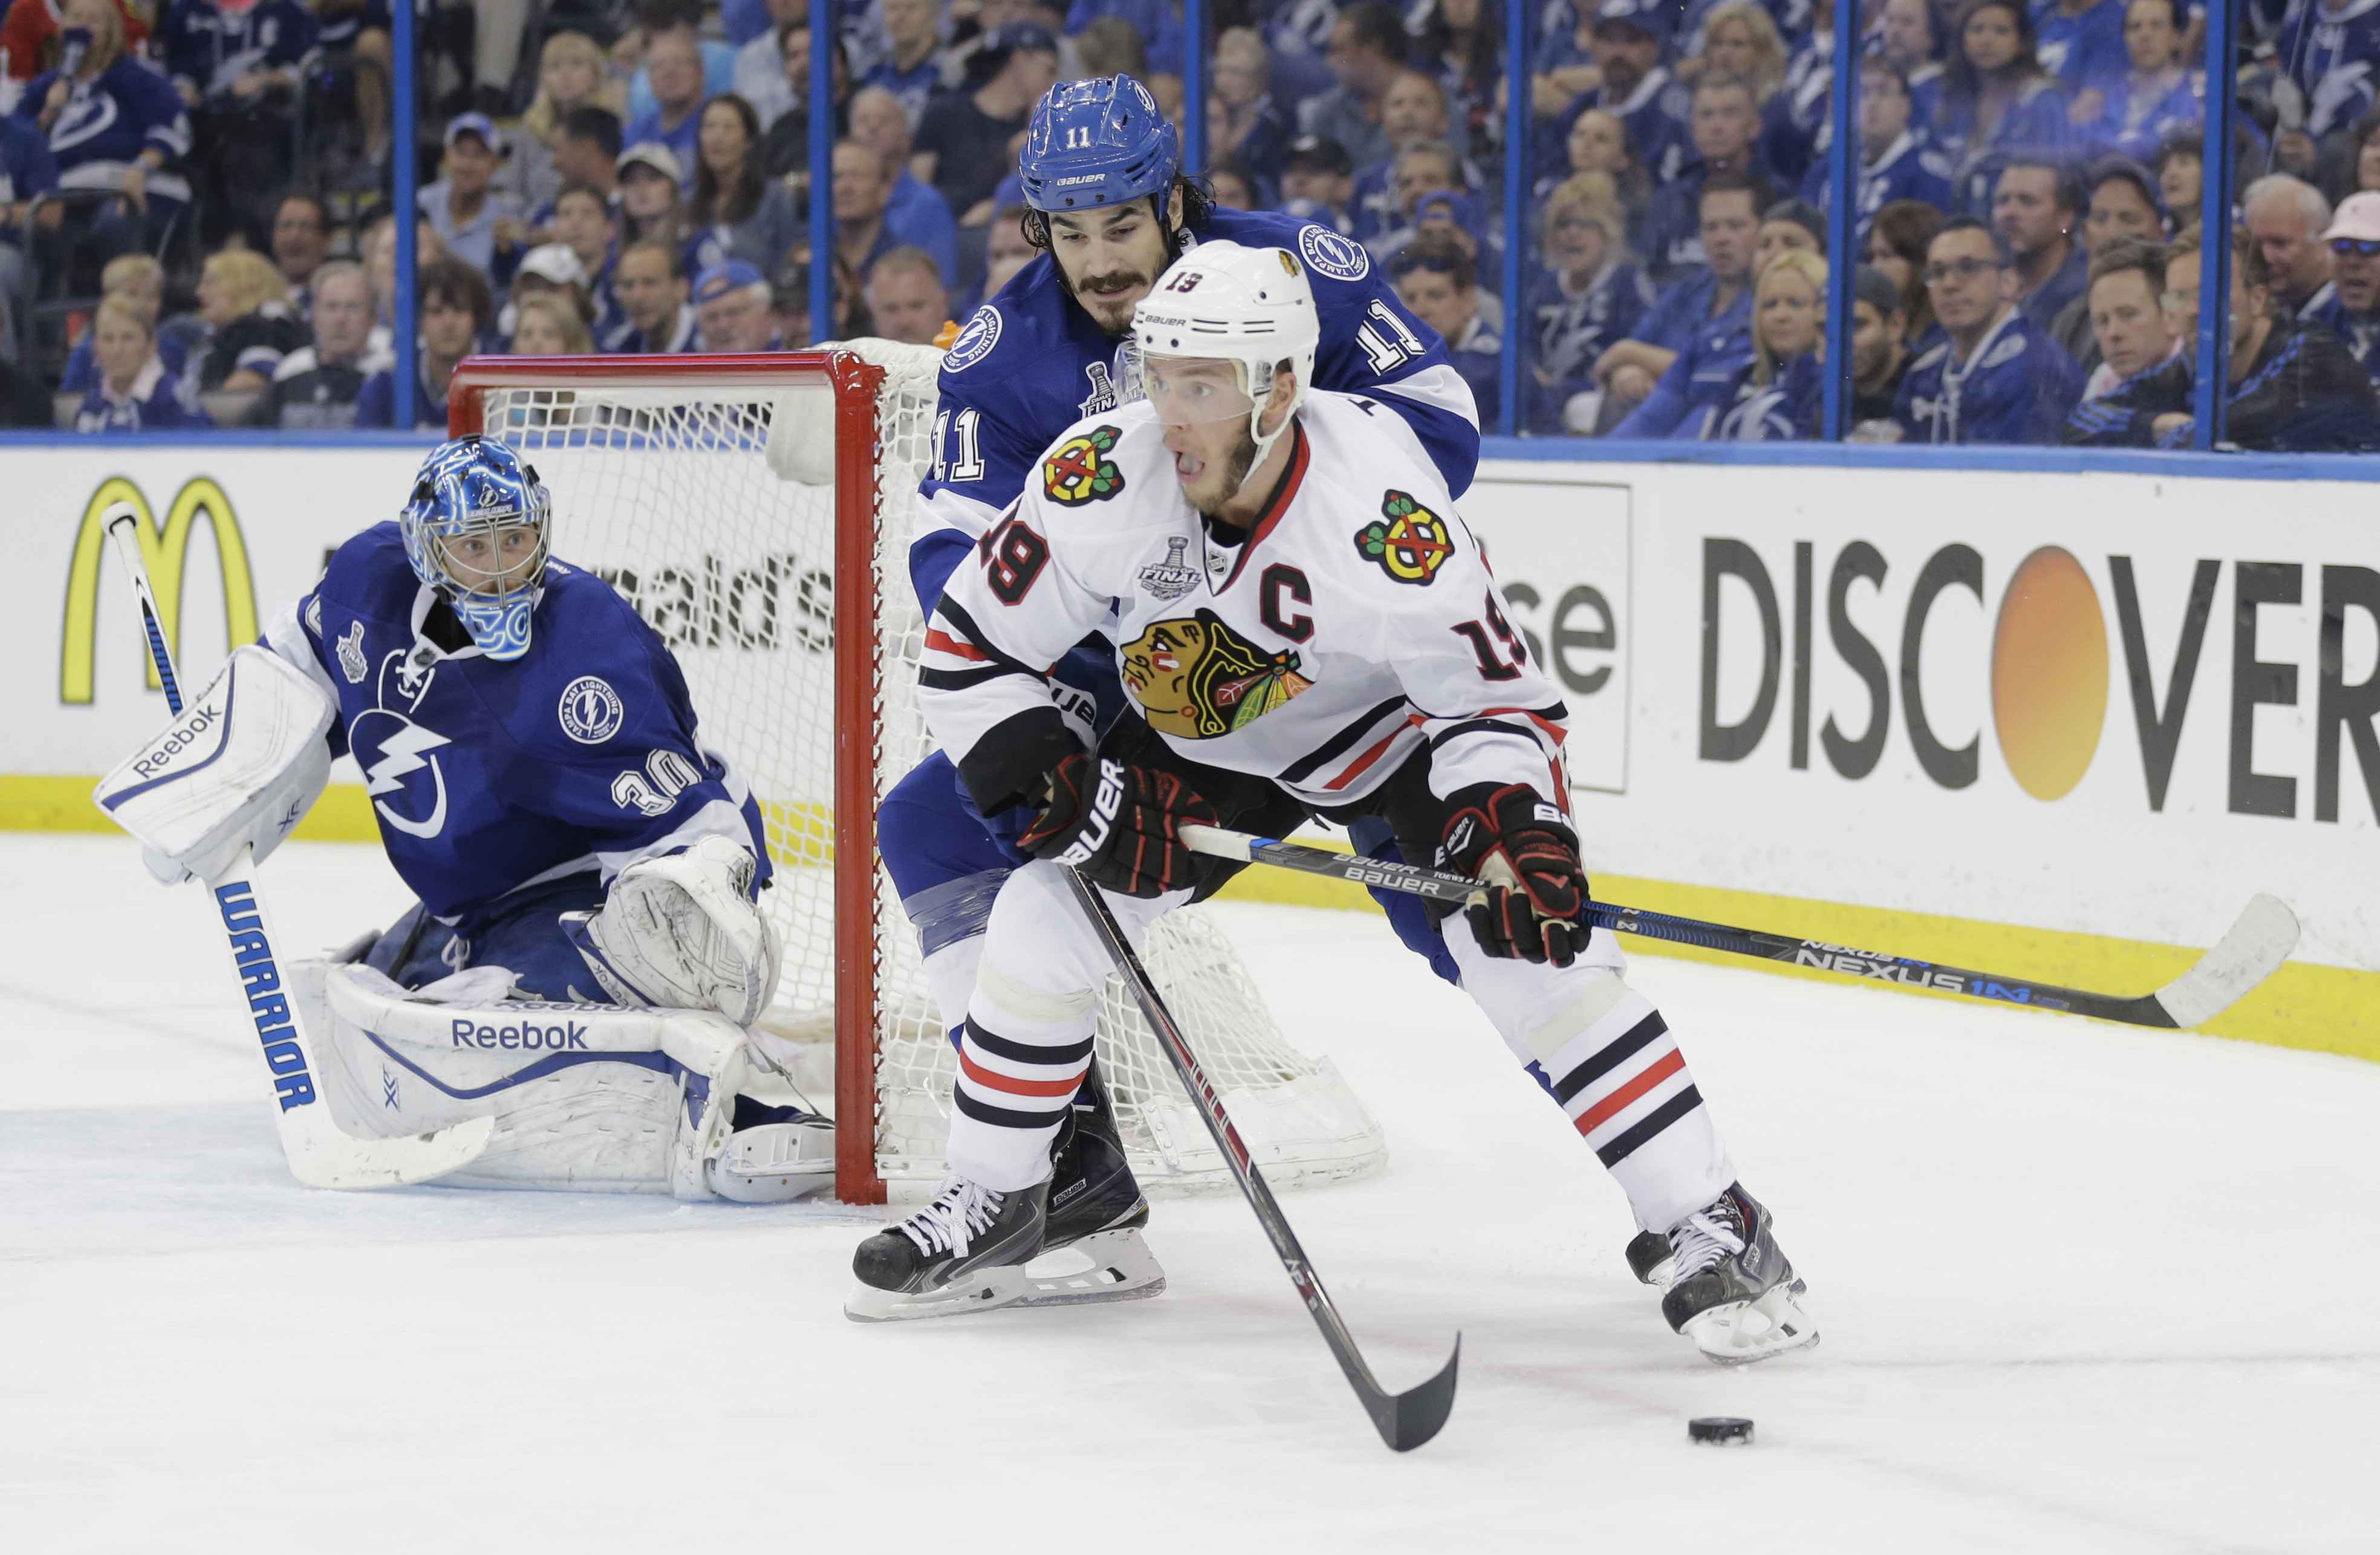 Chicago Blackhawks center Jonathan Toews (19), front, skates around Tampa Bay Lightning center Brian Boyle (11) as goalie Ben Bishop (50), left, defends the net, during the second period in Game 1 of the NHL hockey Stanley Cup Final in Tampa, Fla., Wednes